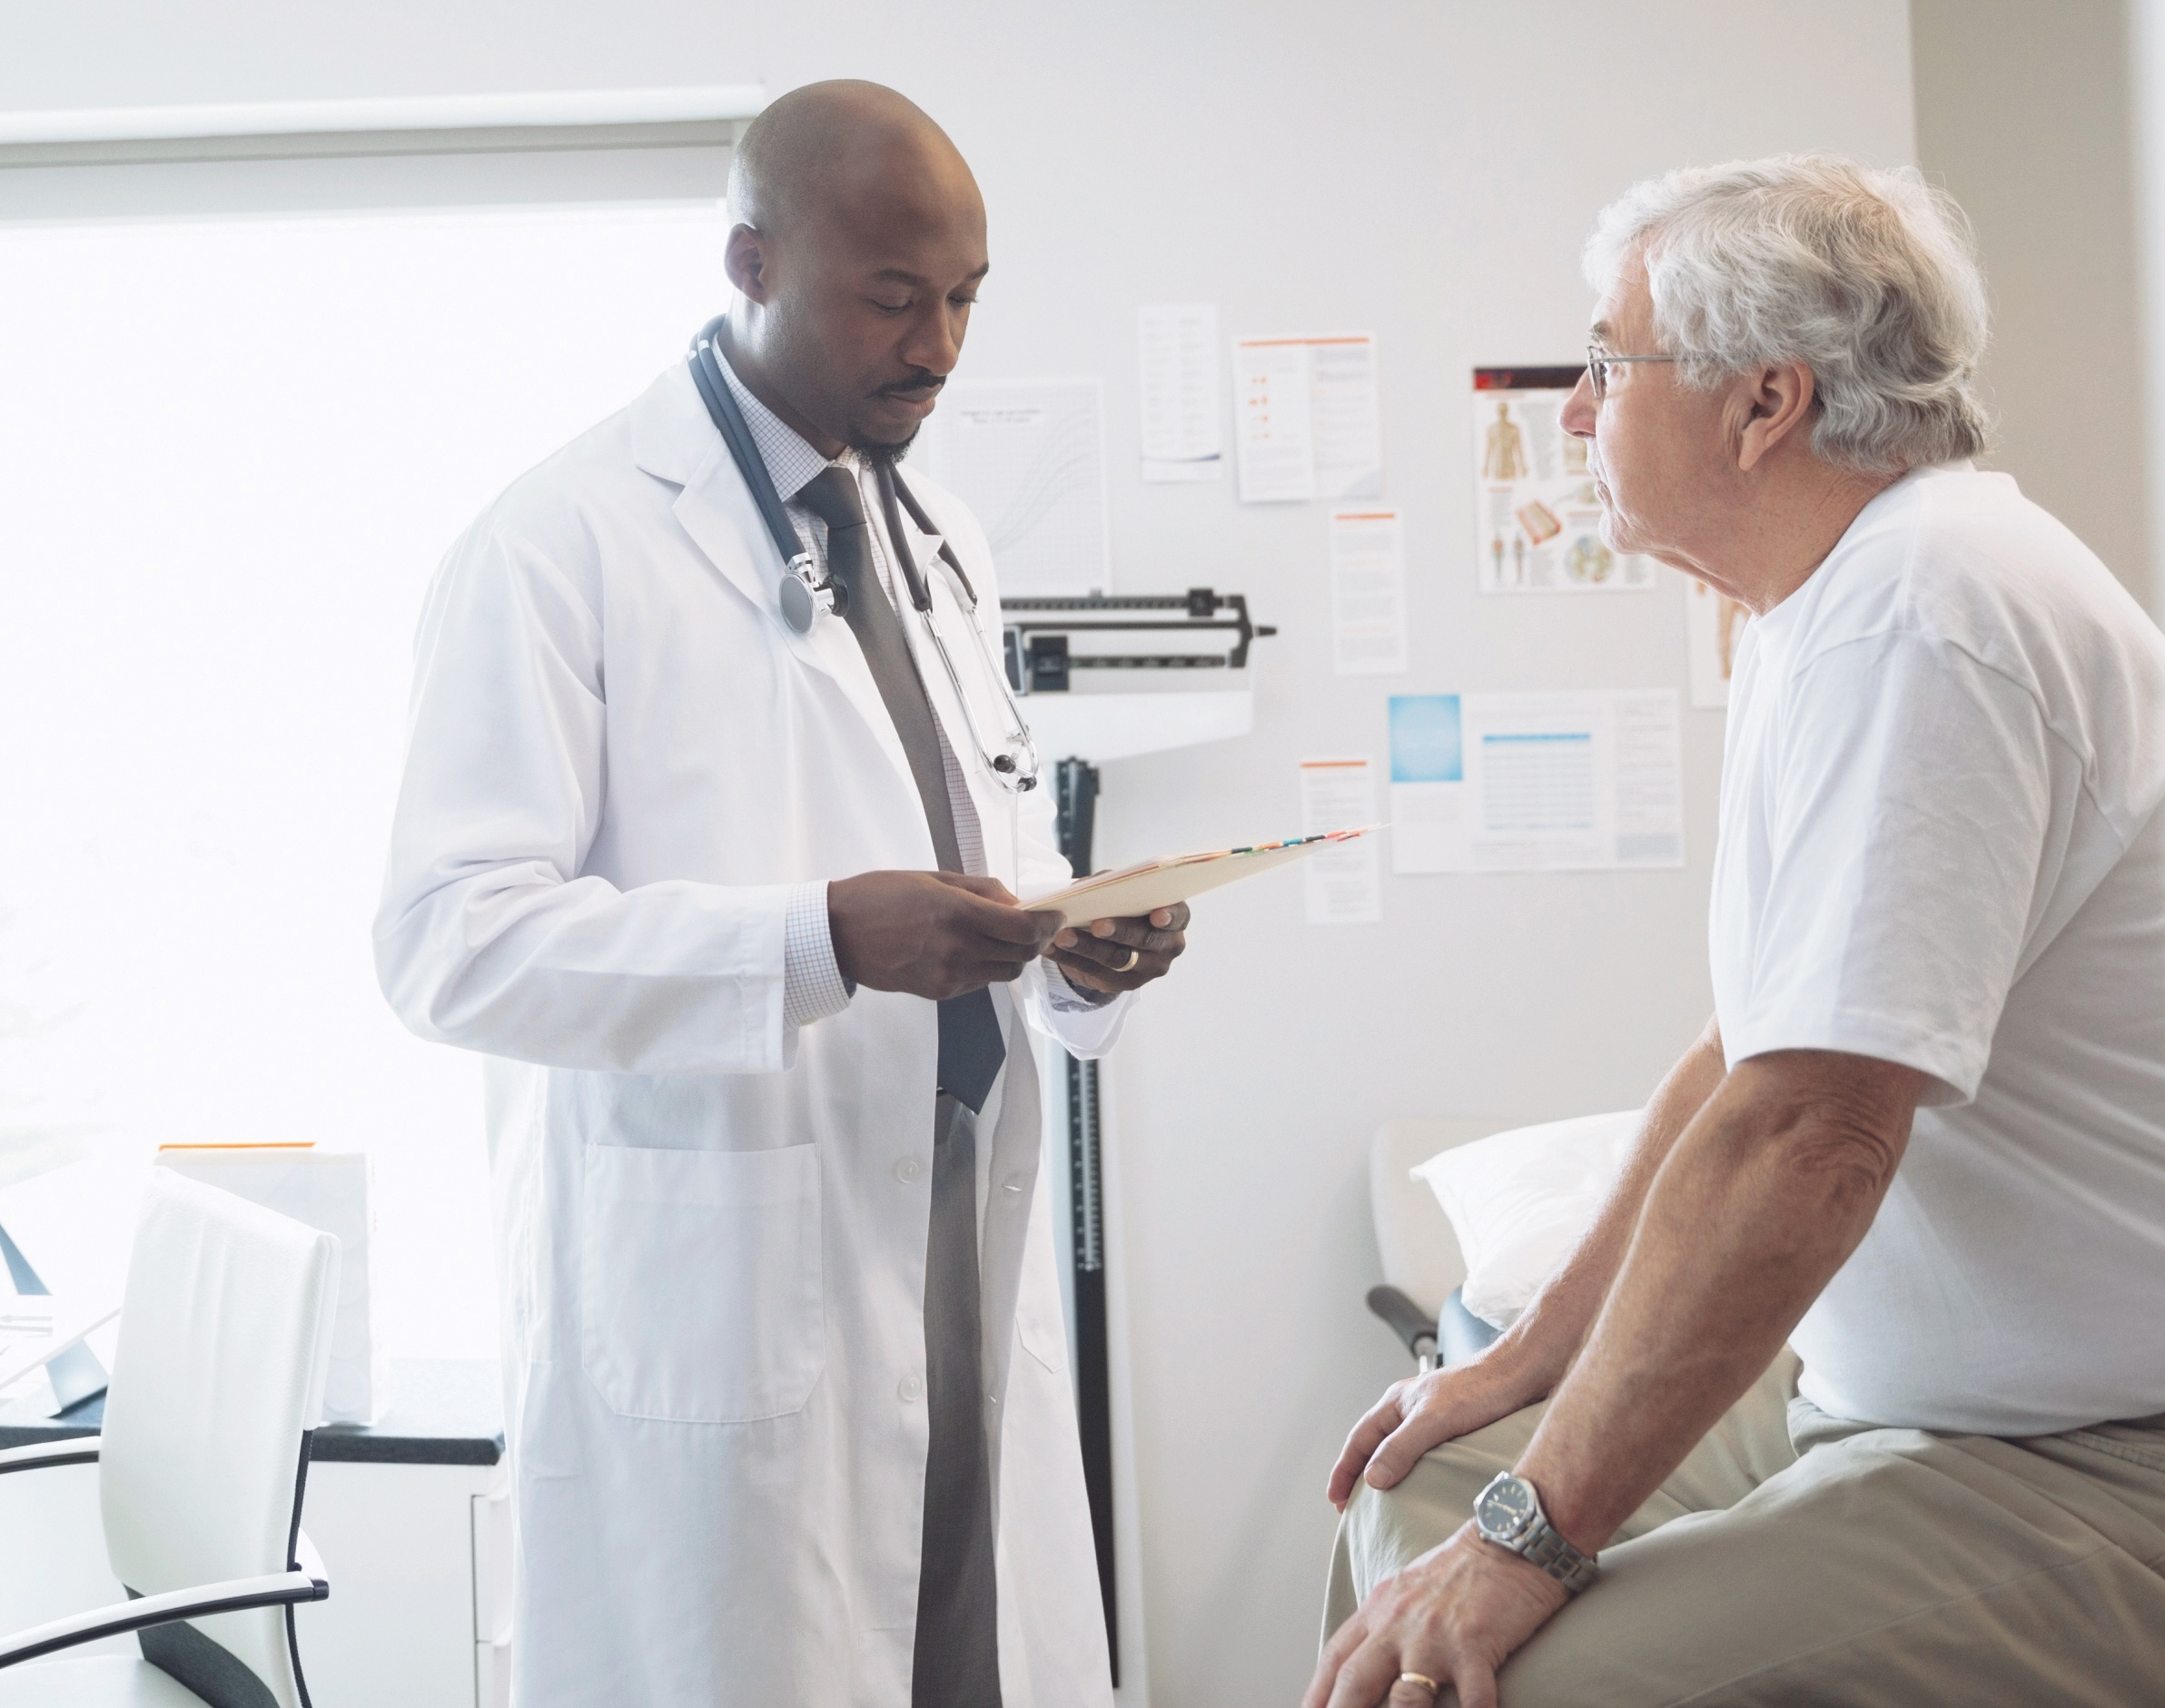 CMS invites states to test new dual-eligible care models